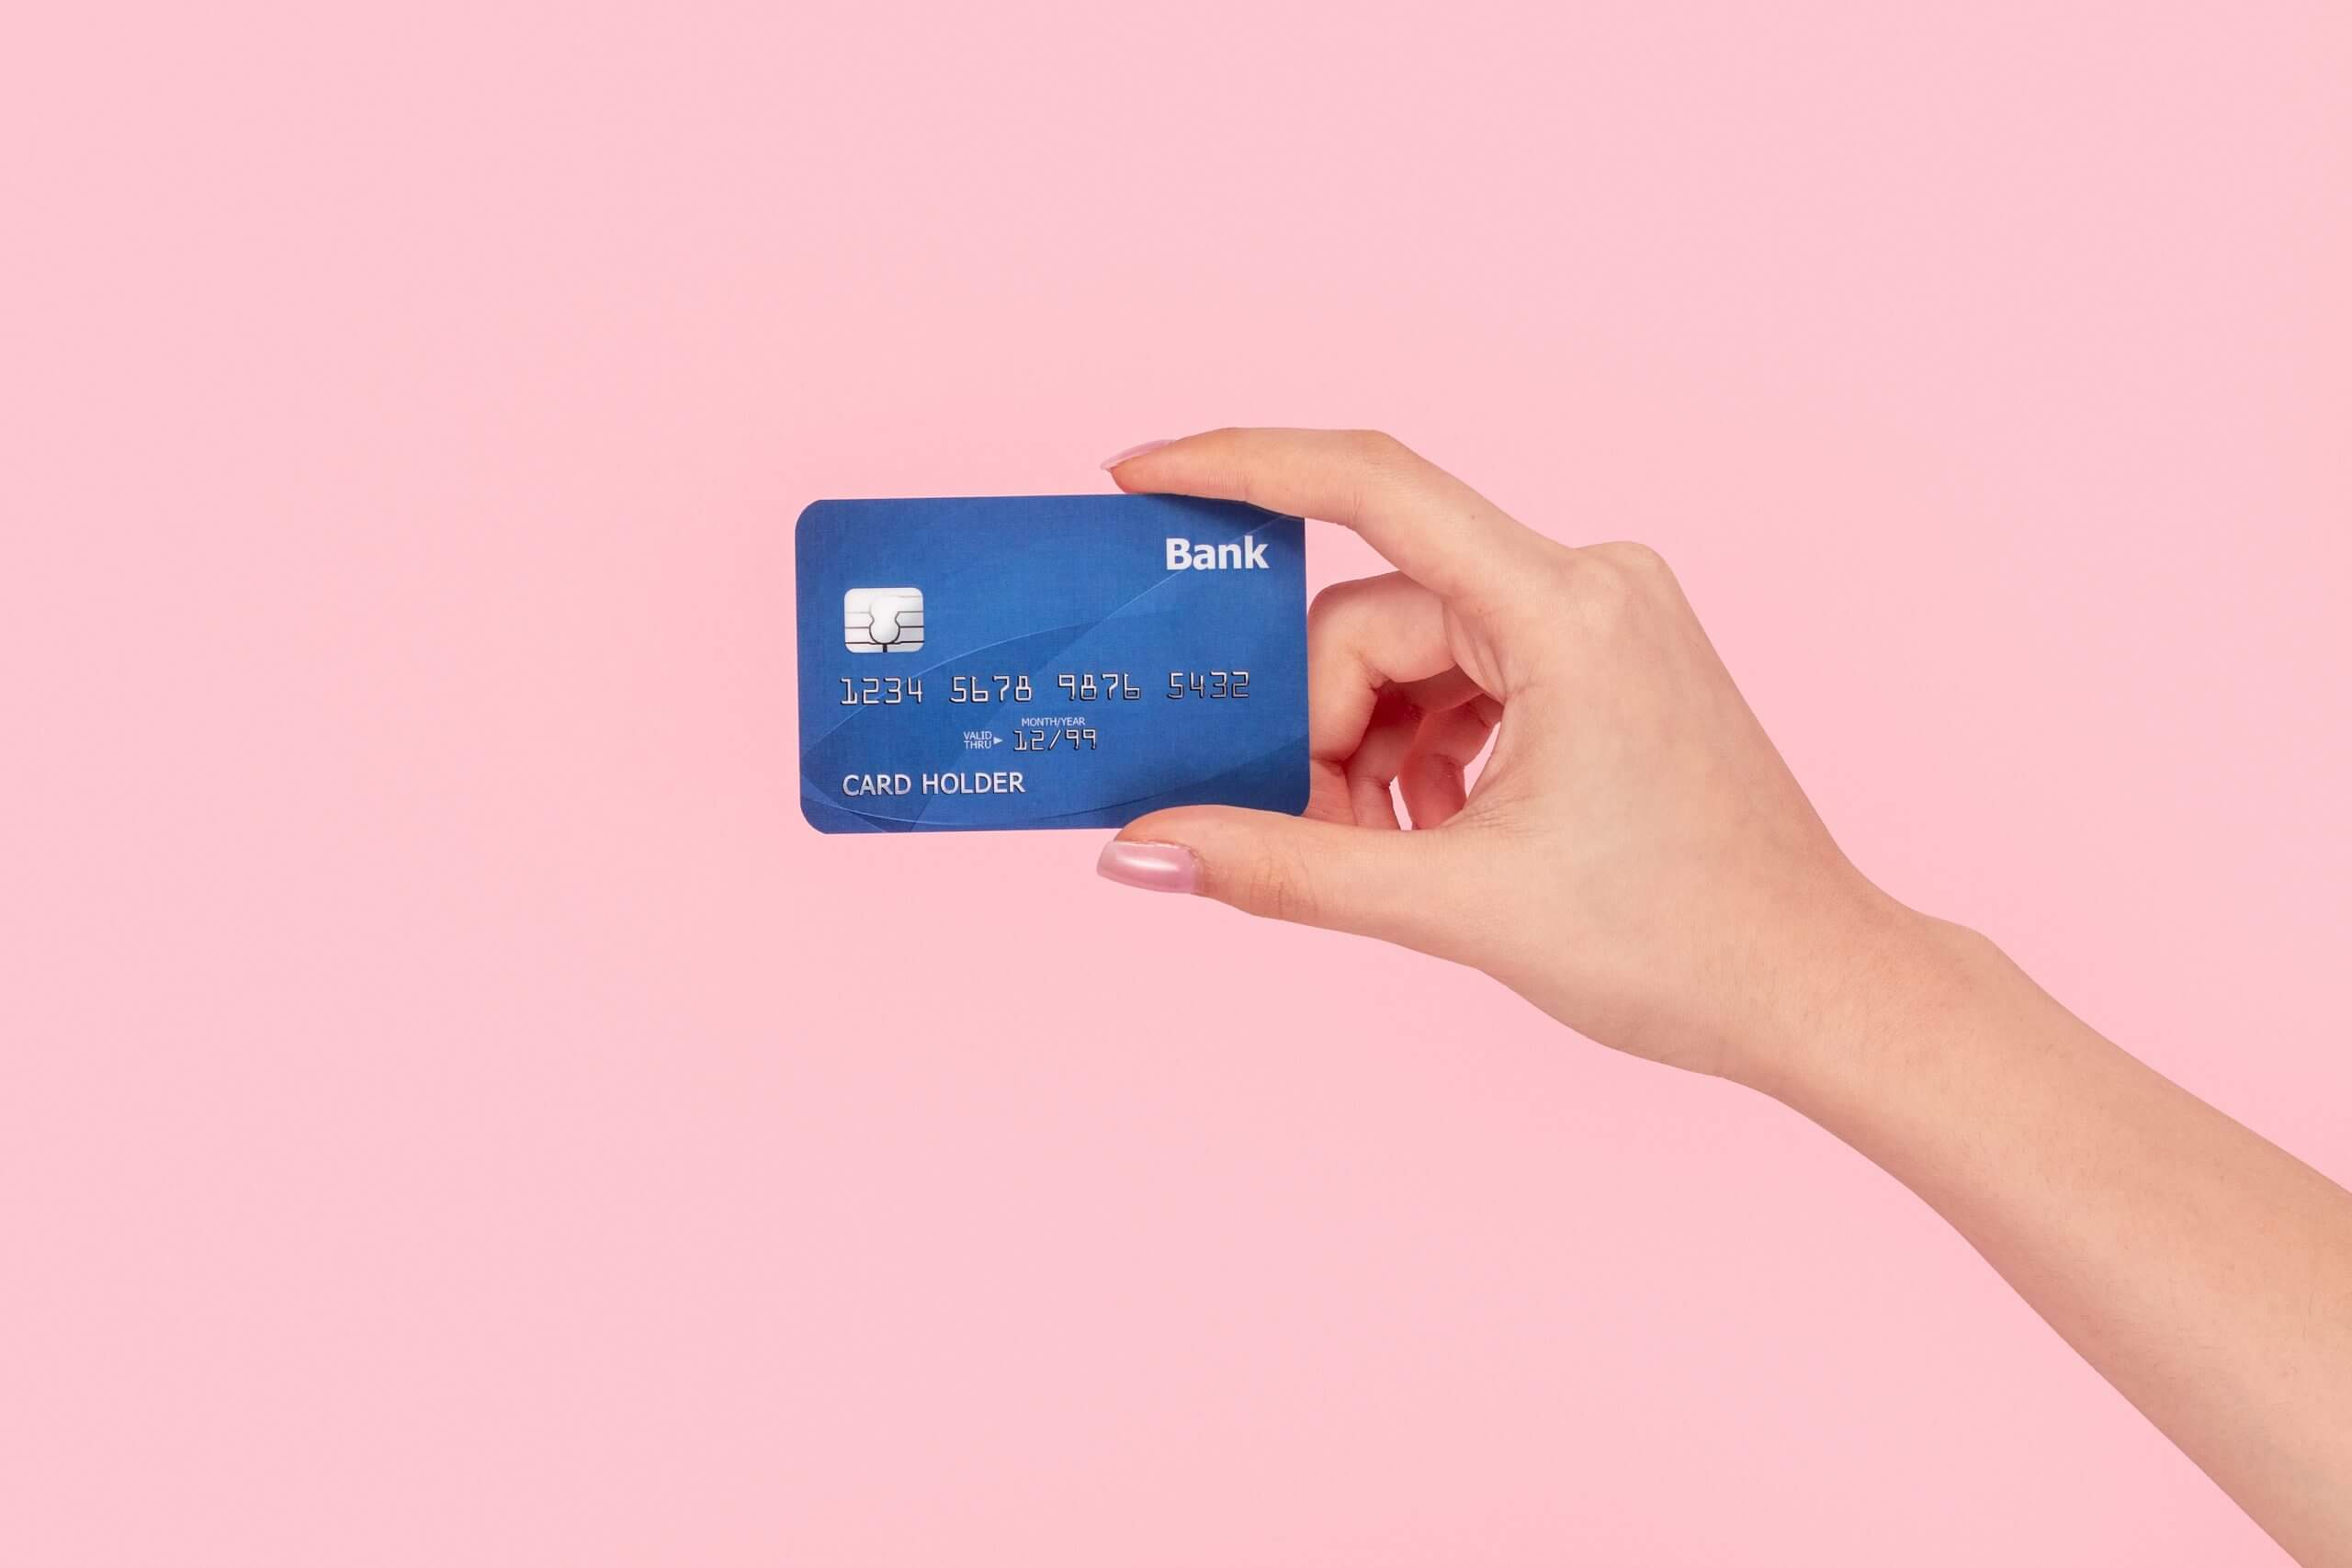 Change payment card